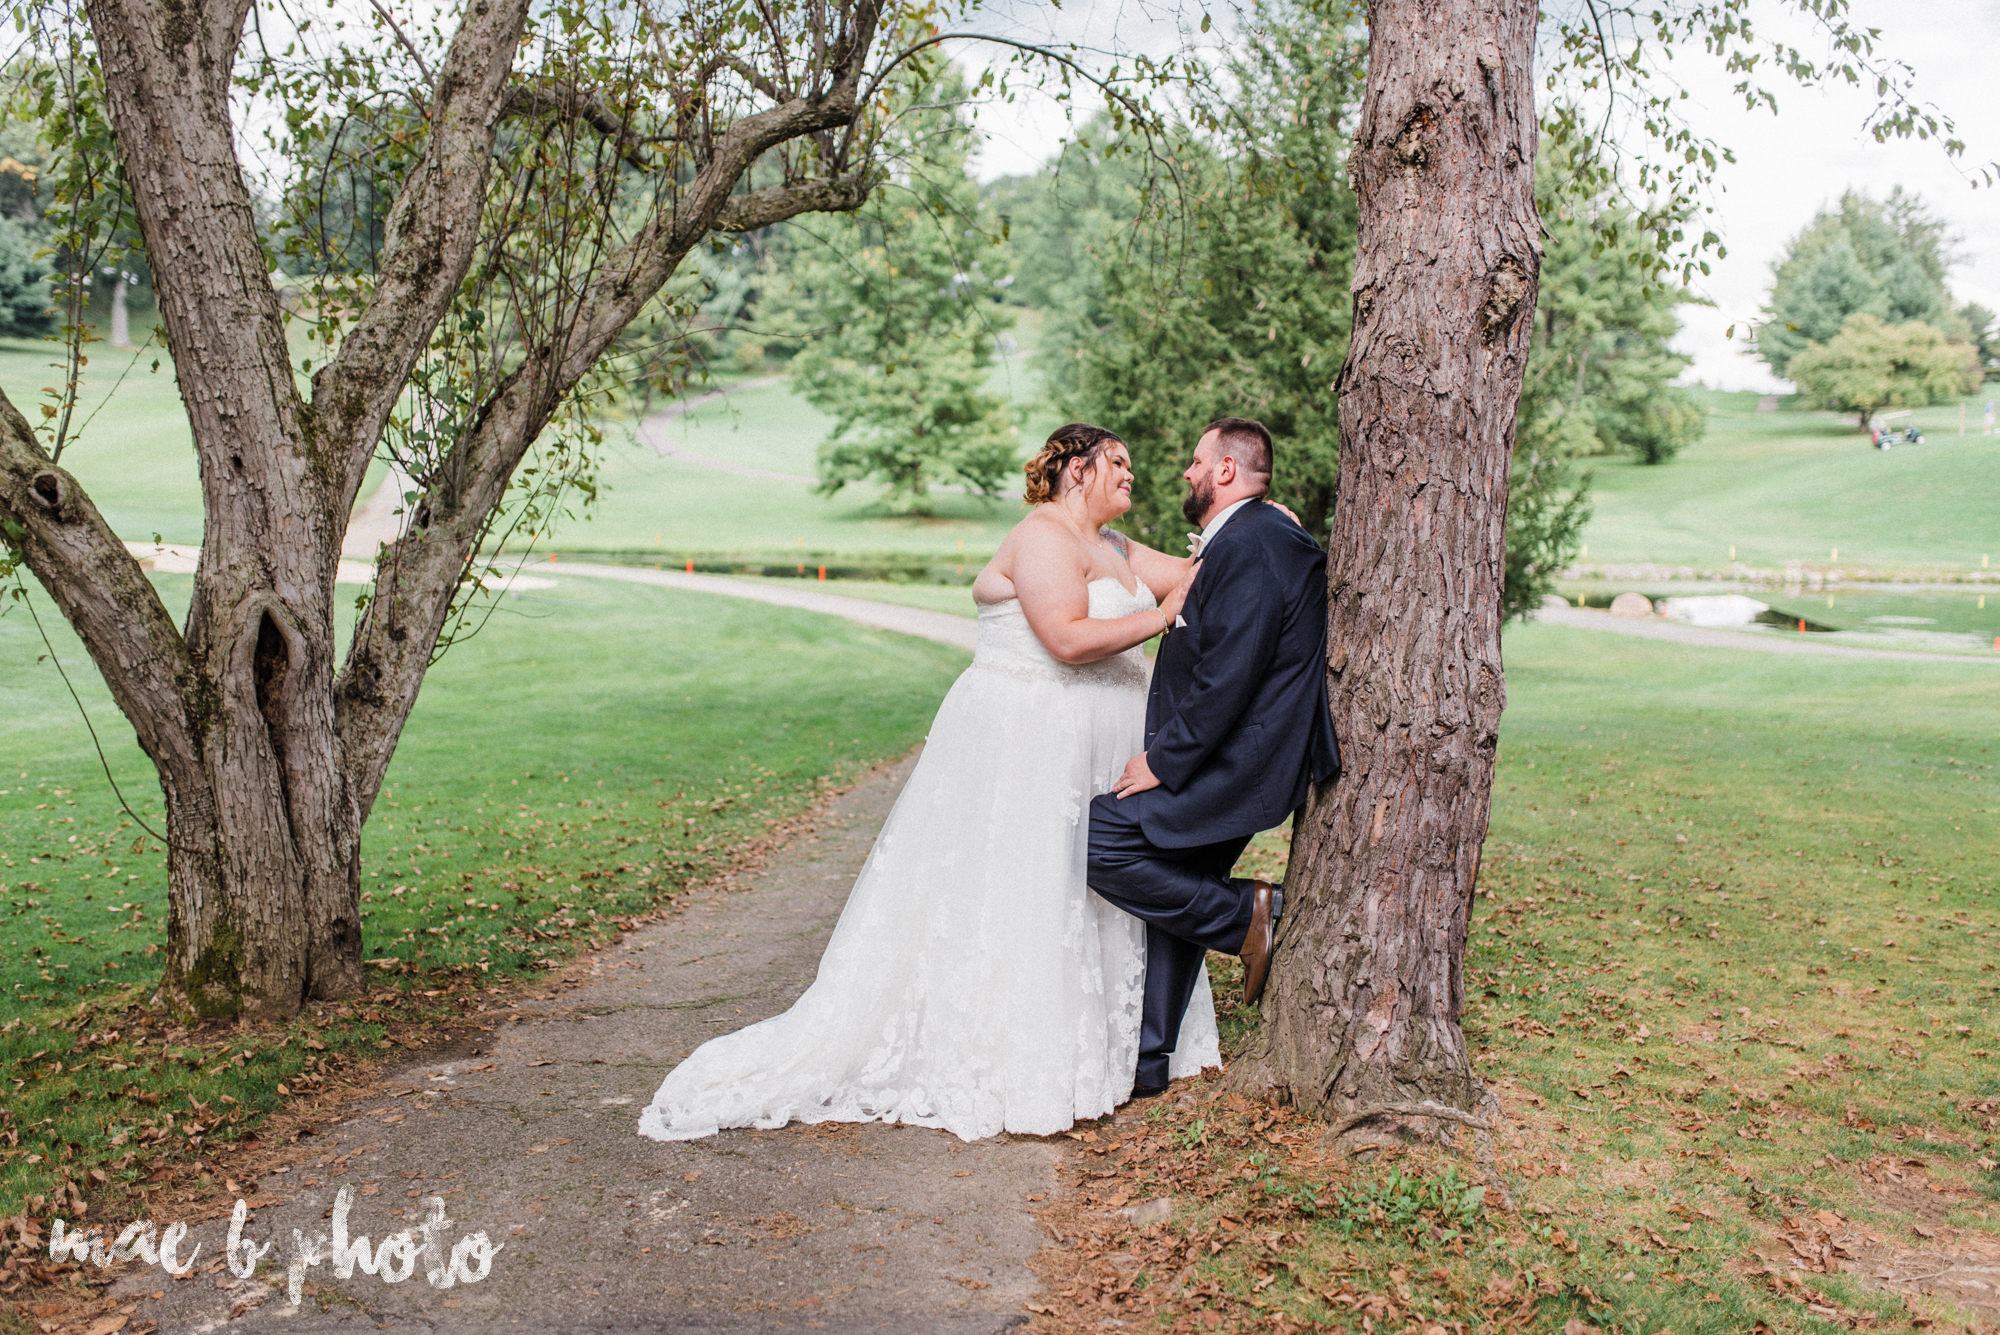 Kristina and ryan's personal vintage glam fall wedding at disalvo's station restaurant and the arnold palmer latrobe country club in latrobe, pa photographed by youngstown wedding photographer mae b photo-41.jpg